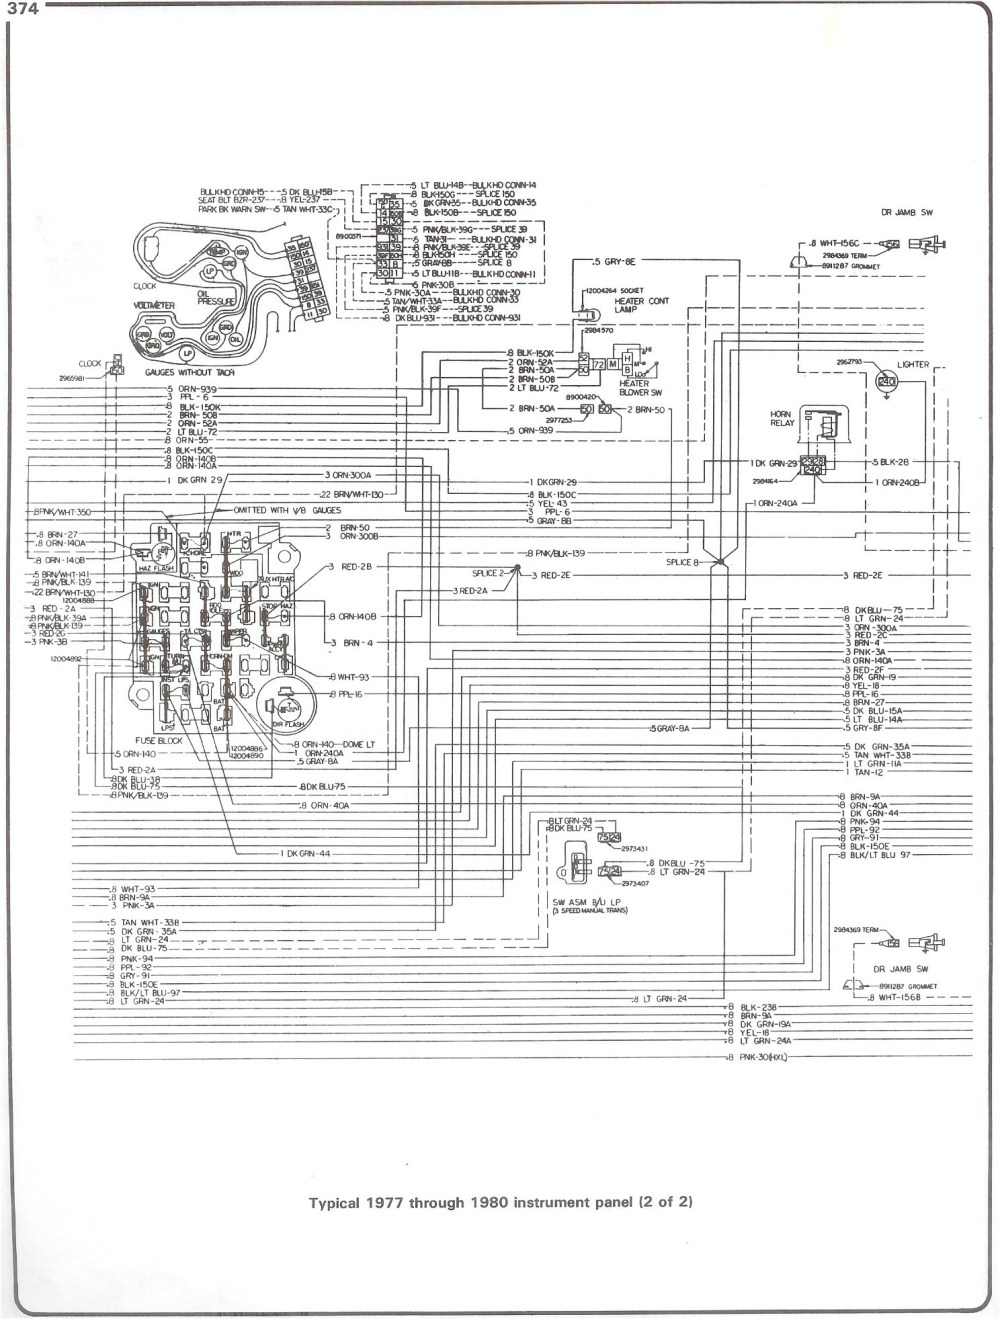 medium resolution of 1978 chevy k10 wiring diagram schema diagram database fise wiring diagram 78 chevy truck